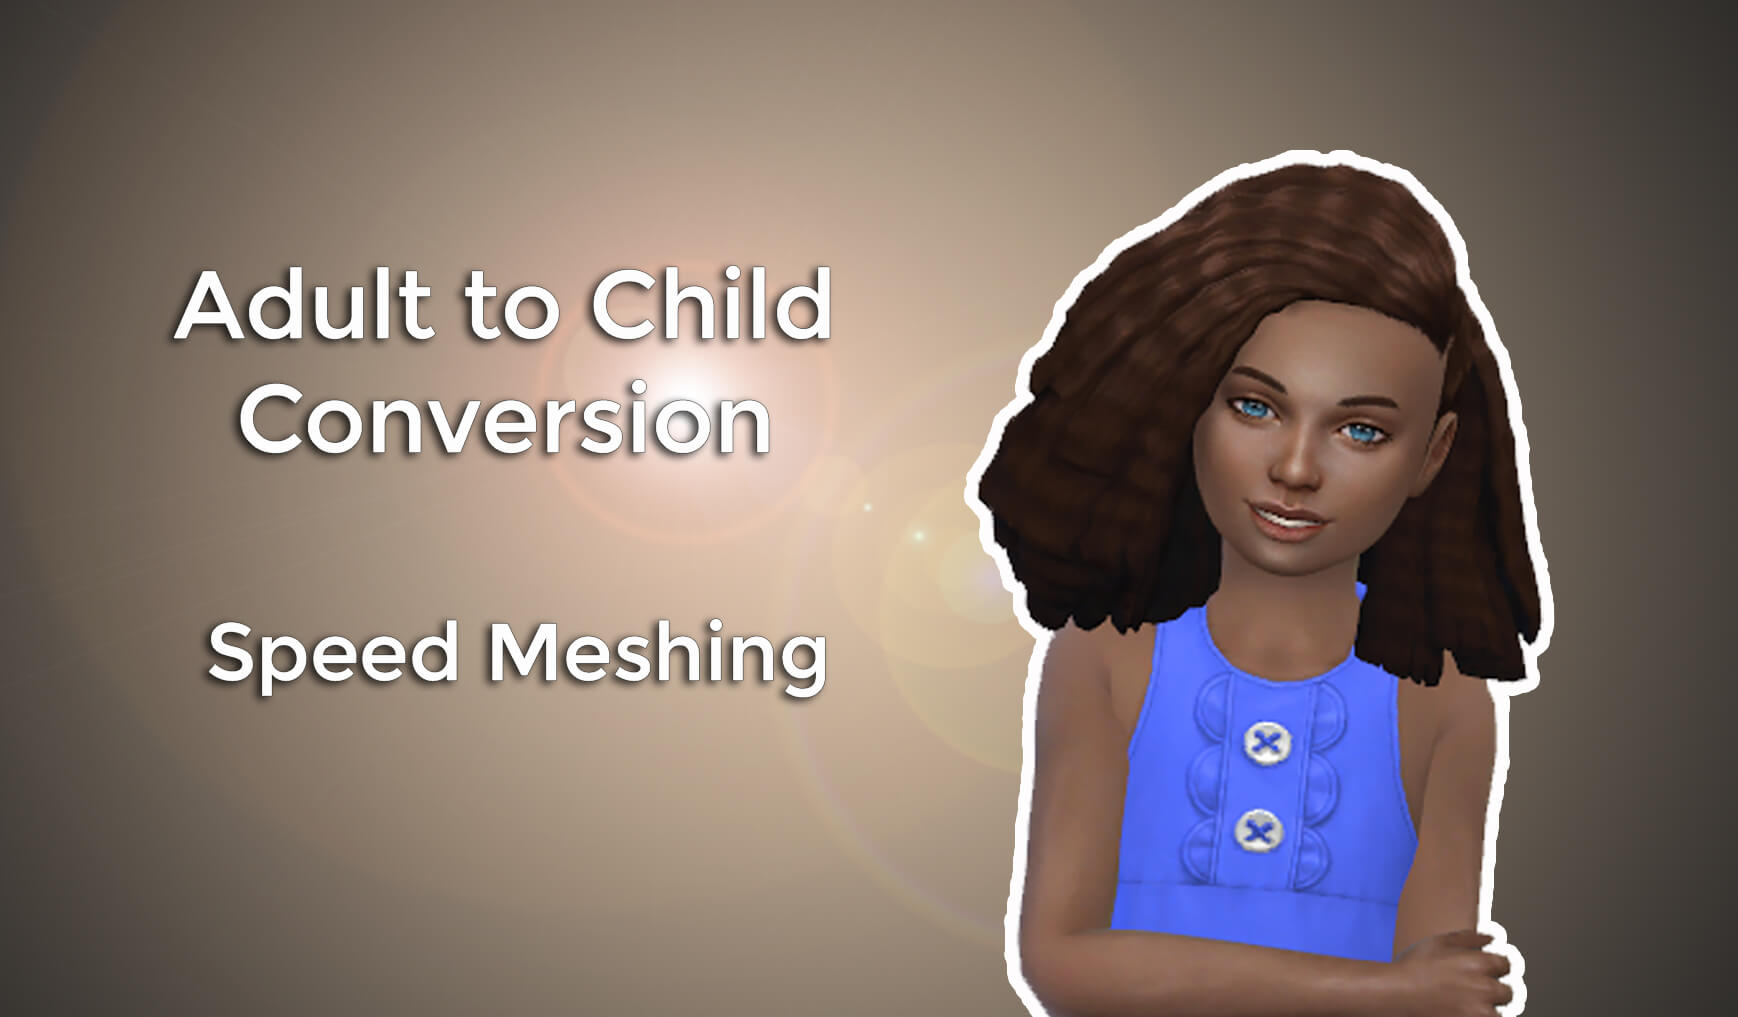 Adult to Child Conversion - Speed Meshing